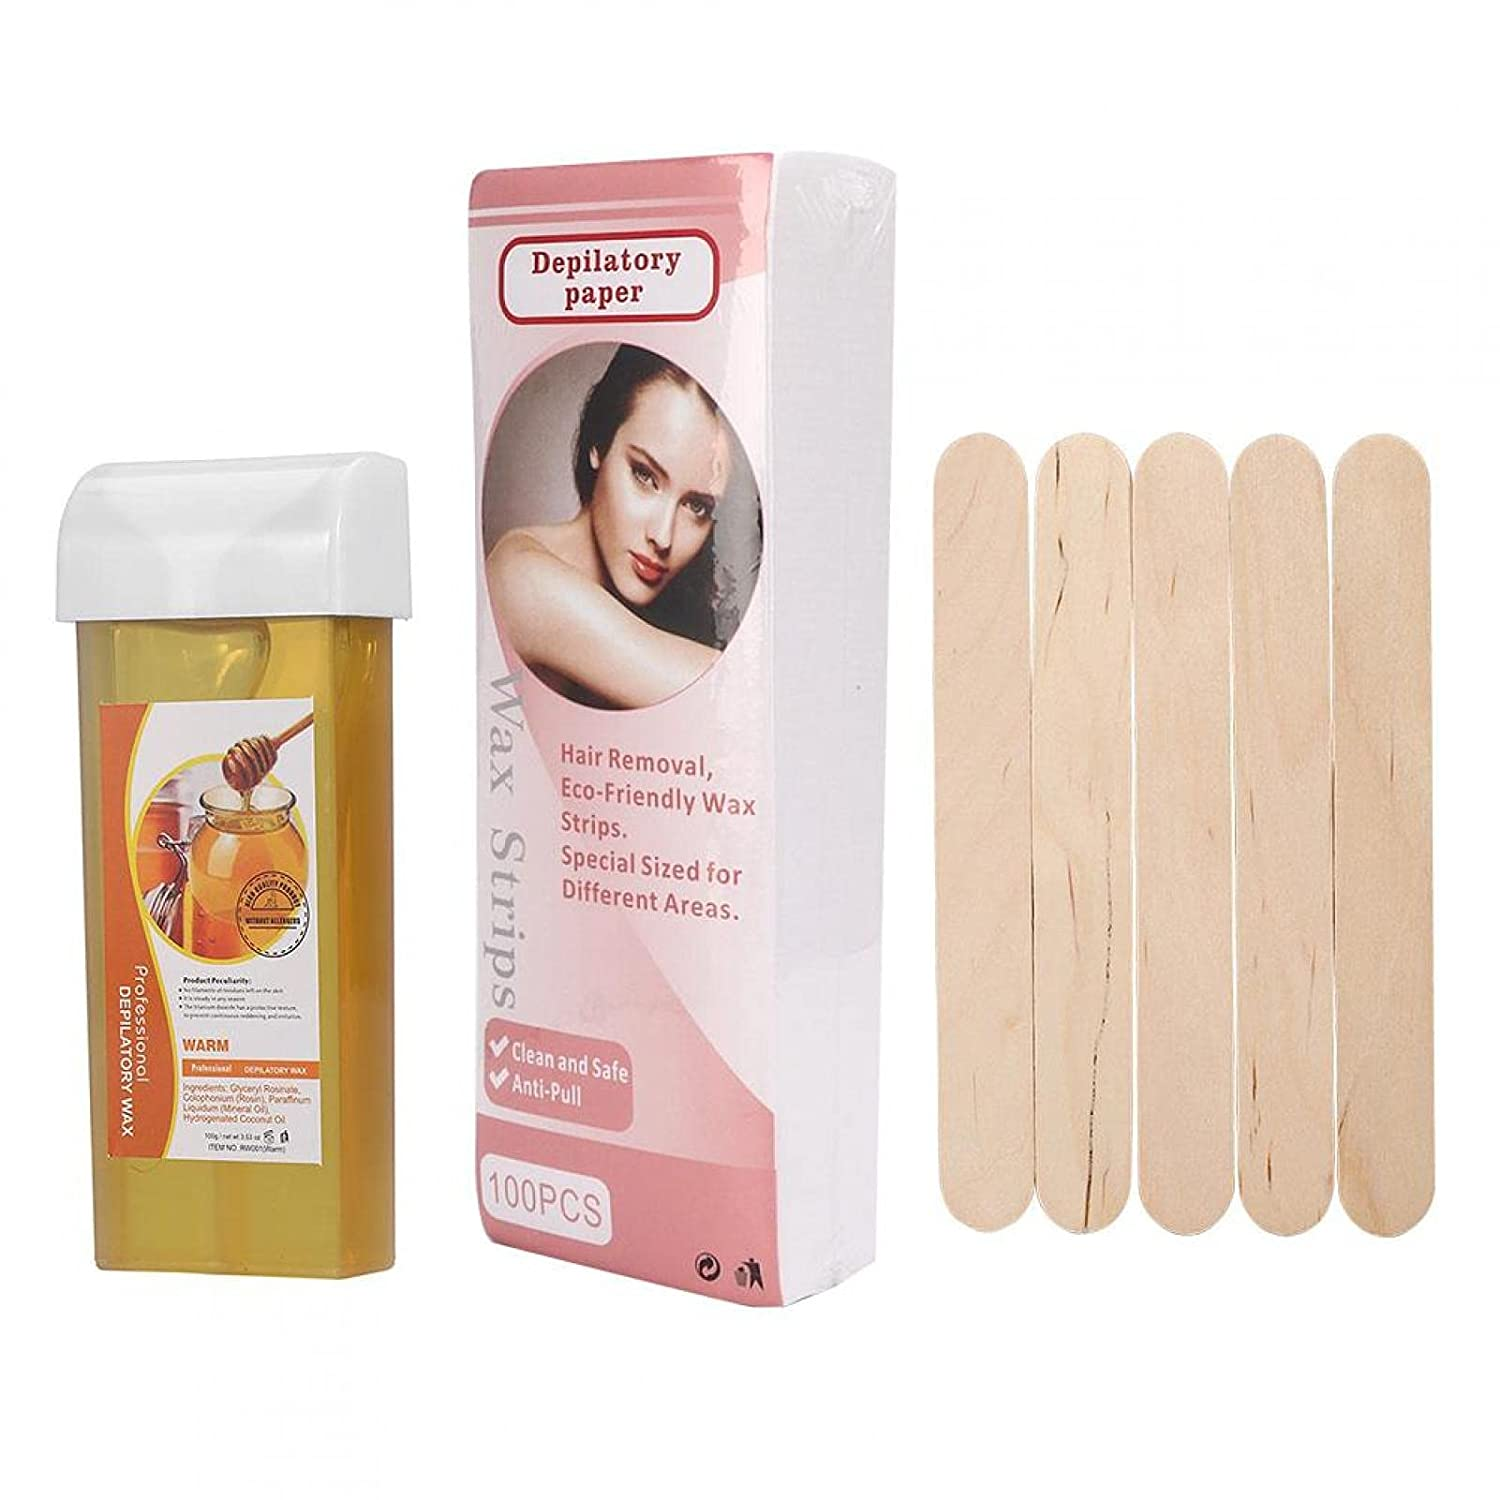 Depilatory Be super welcome Wax Easy To Efficient Practical Le Max 51% OFF Hair Removal